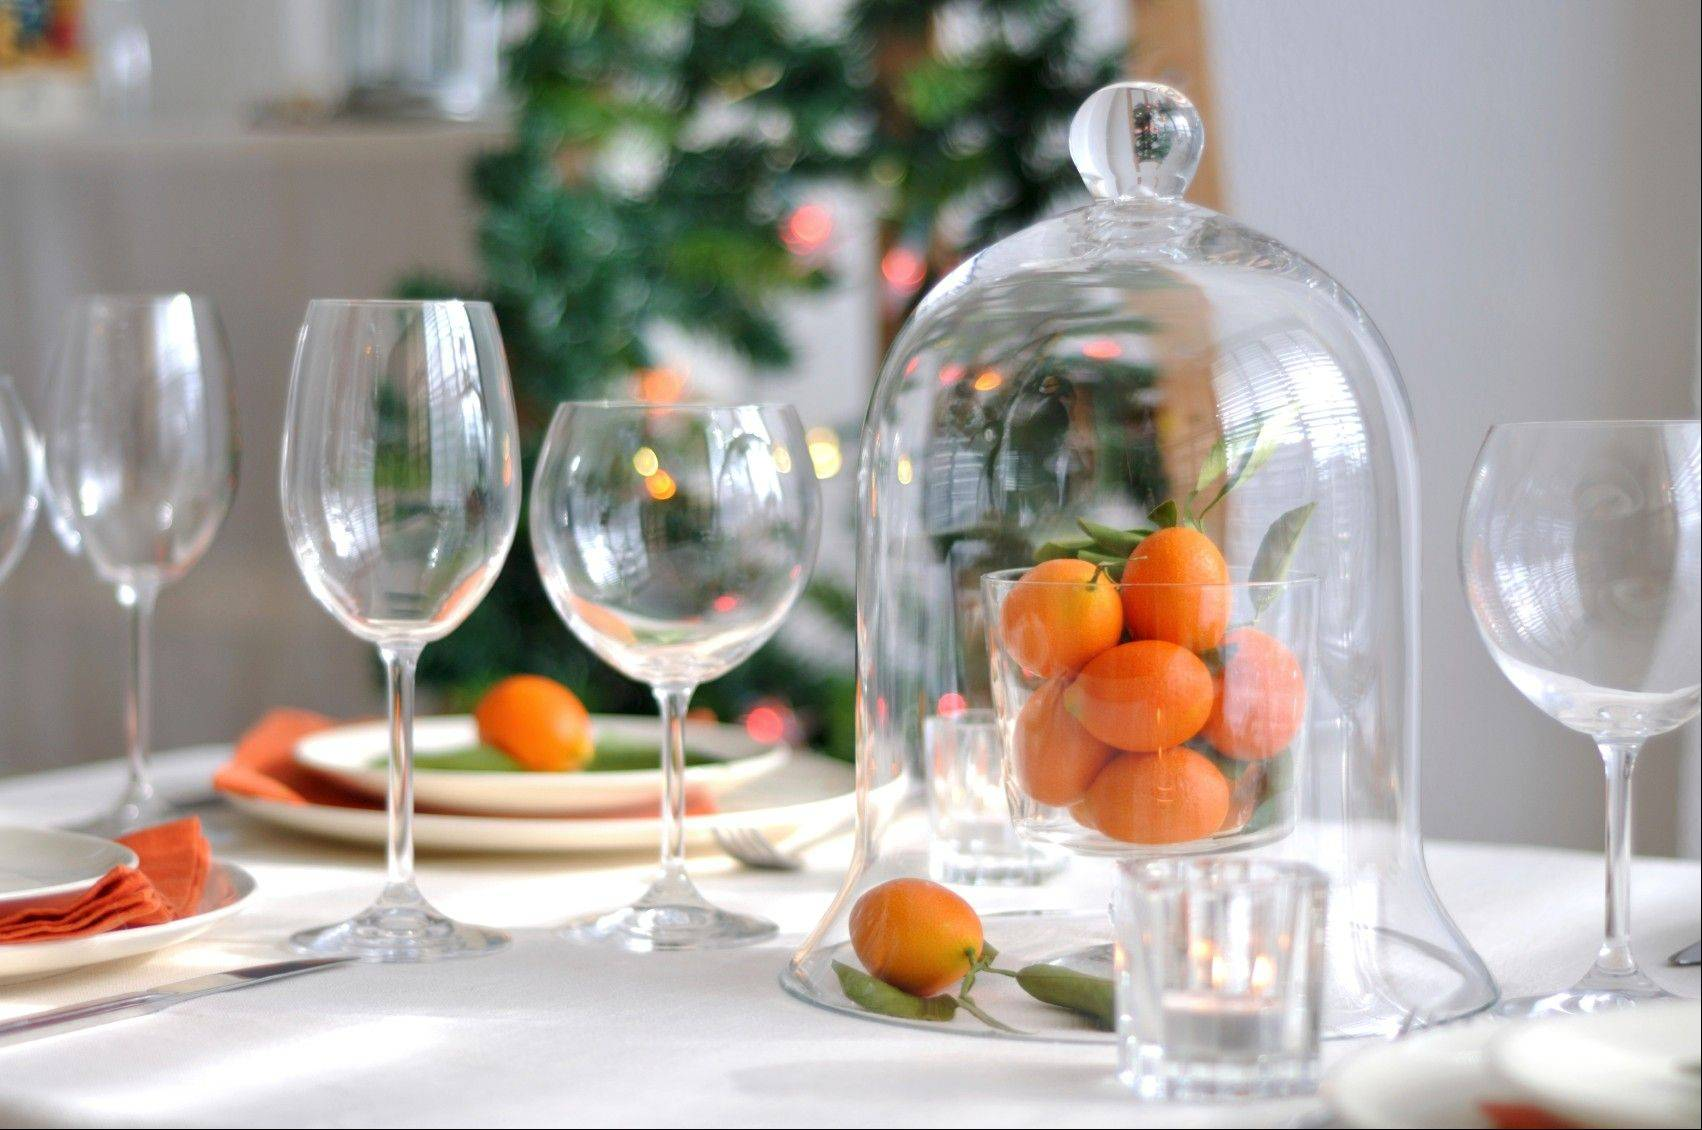 Bright orange napkins and natural decor like oranges and kumquats add a punch of color to the tabletop.